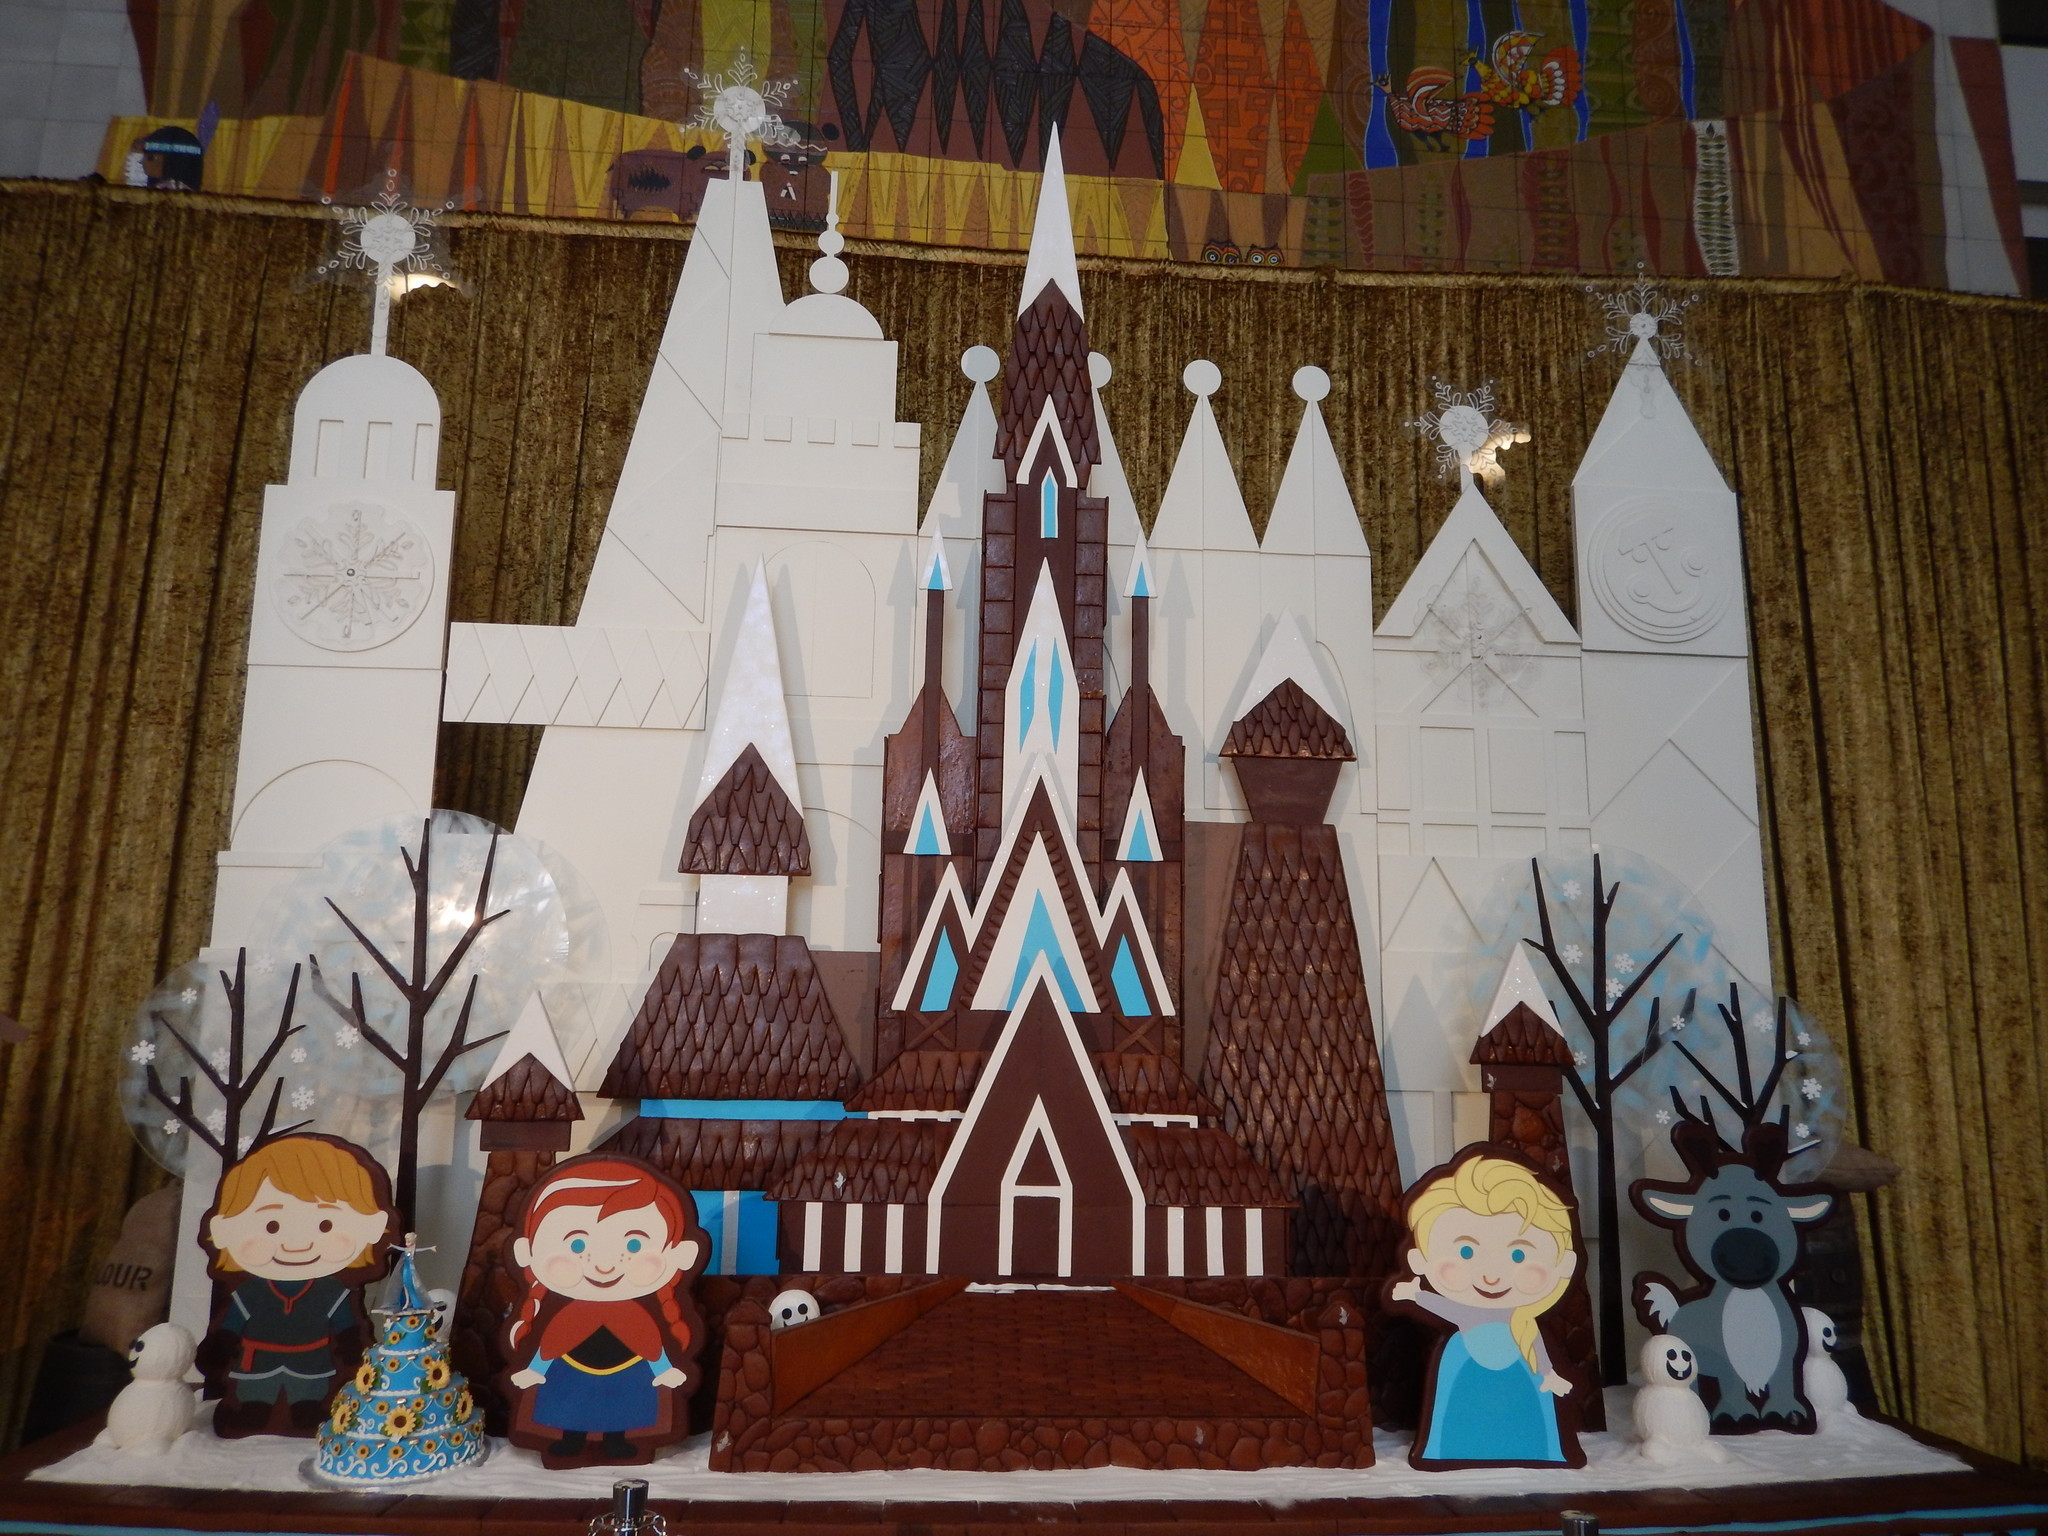 Disney hotel christmas decorations - Disney Hotels Get Decked Out For The Holidays Orlando Sentinel